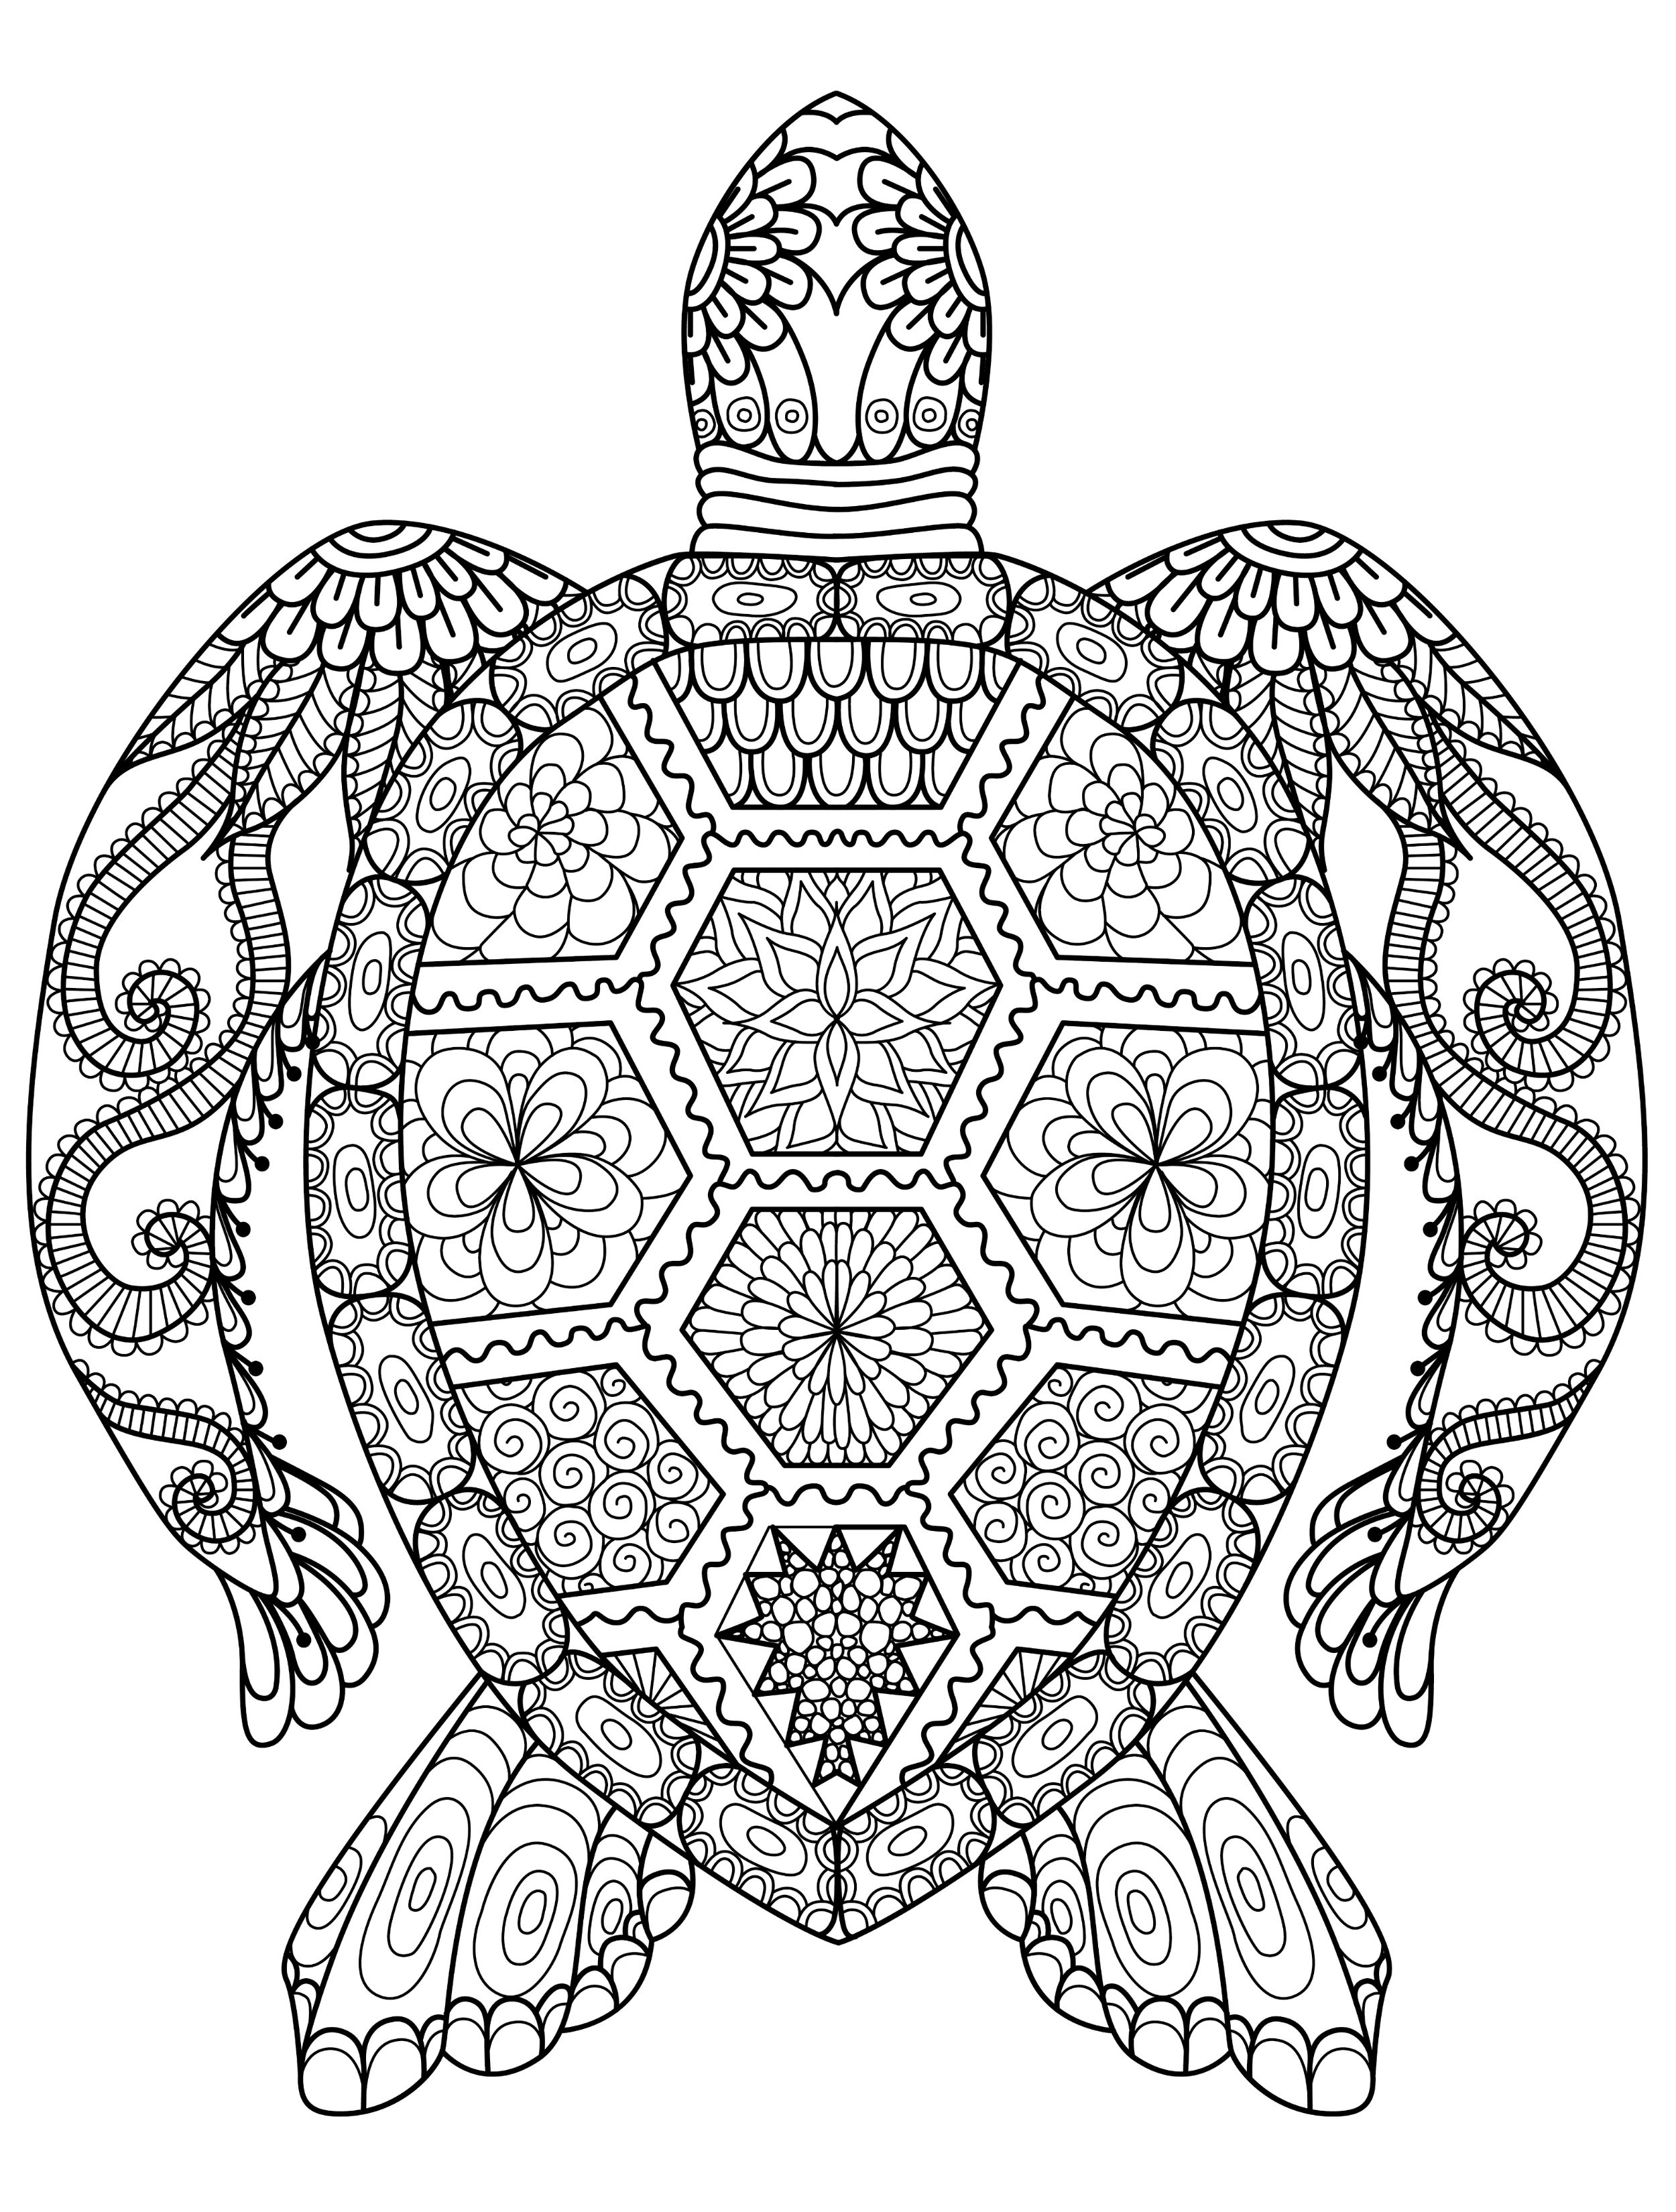 printable detailed coloring pages animal coloring pages for adults best coloring pages for pages detailed coloring printable